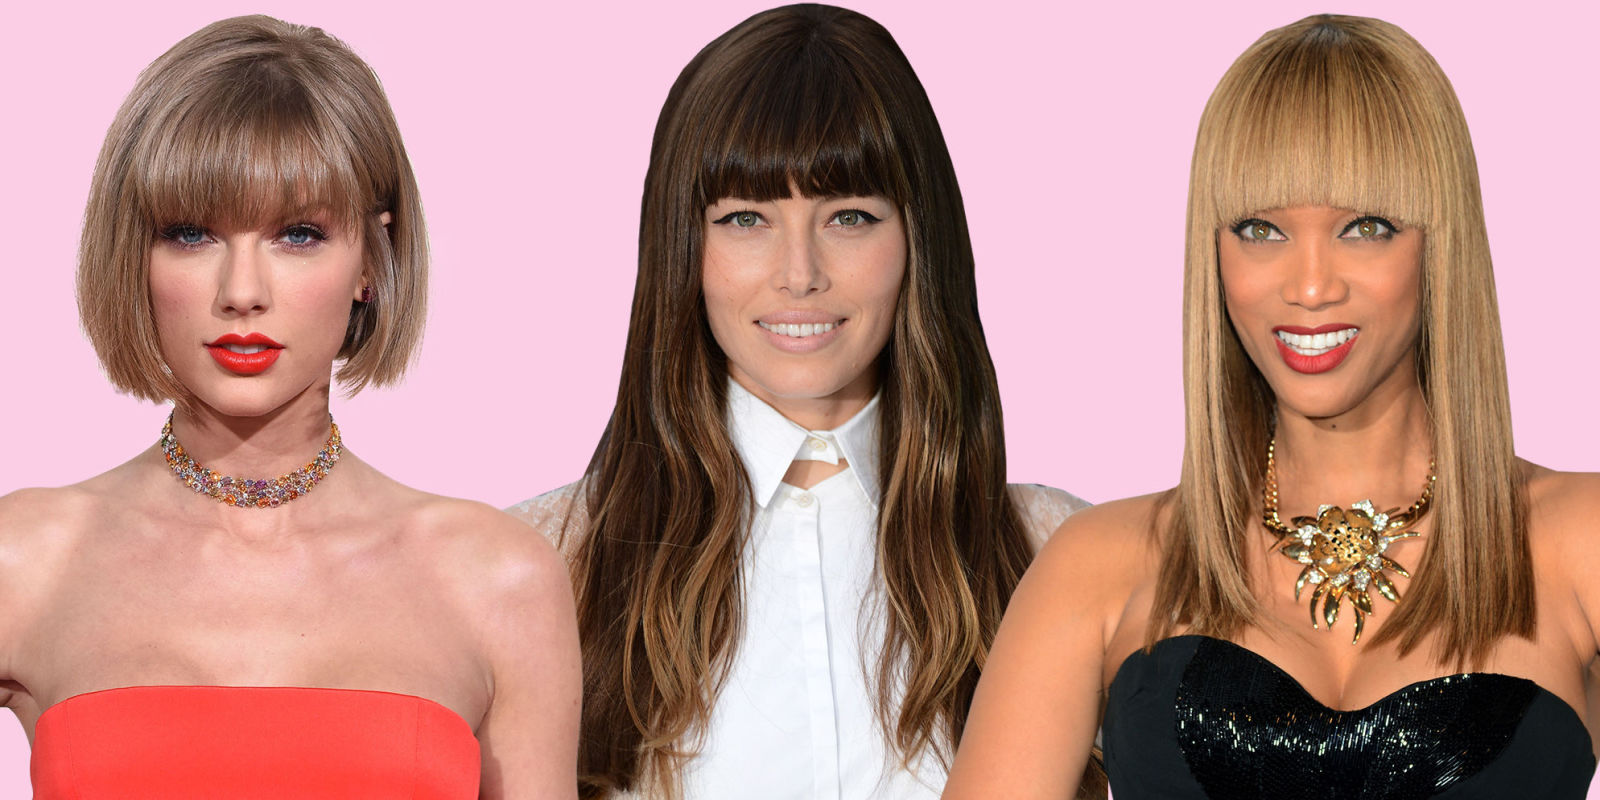 how to style straight hair with bangs blunt bangs are so trendy for 2016 best blunt styles 4896 | landscape 1456334913 blunt bangs